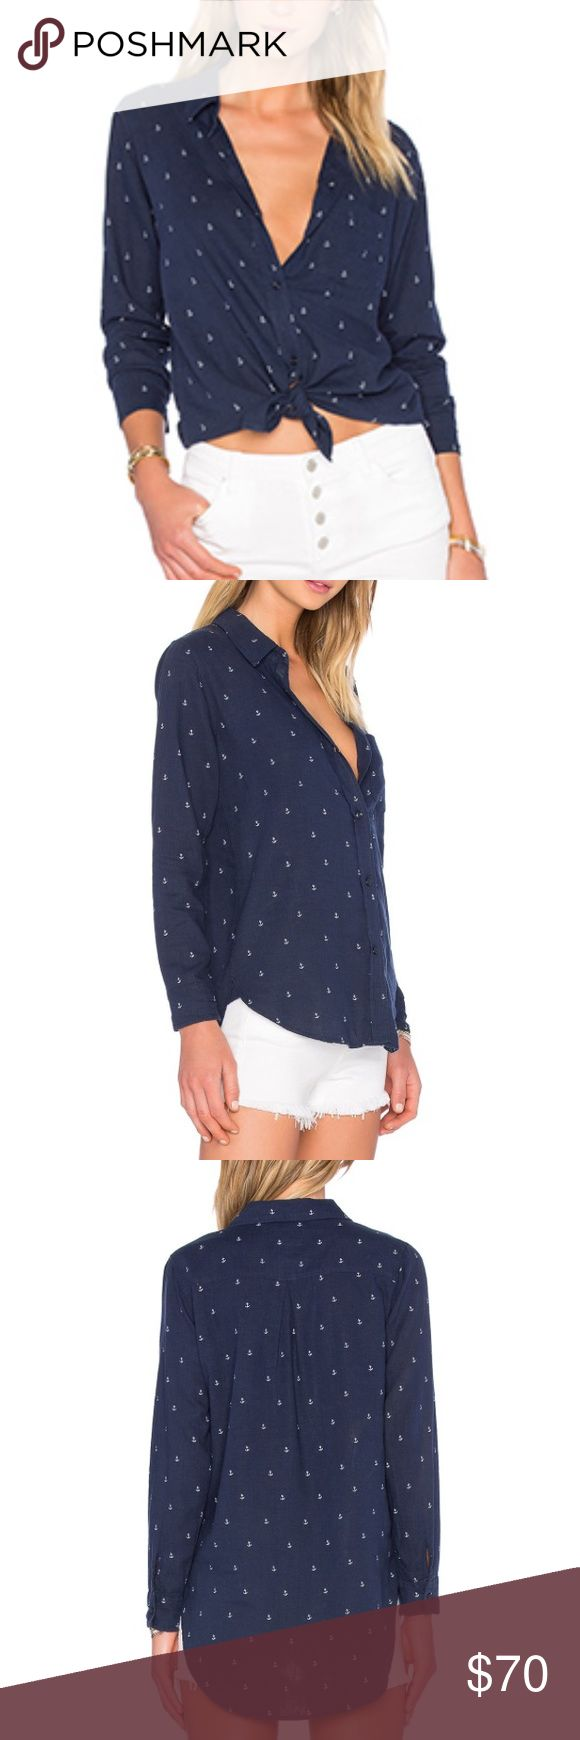 NWT Sold Out Rails Anchor Shirt The NWT Rails anchor shirt is adorable! Amazing material, navy blue with cute tiny white anchor details.  Looks great with jeans or tied up with shorts. Sold out on Revolve. ⚓️ Rails Tops Button Down Shirts